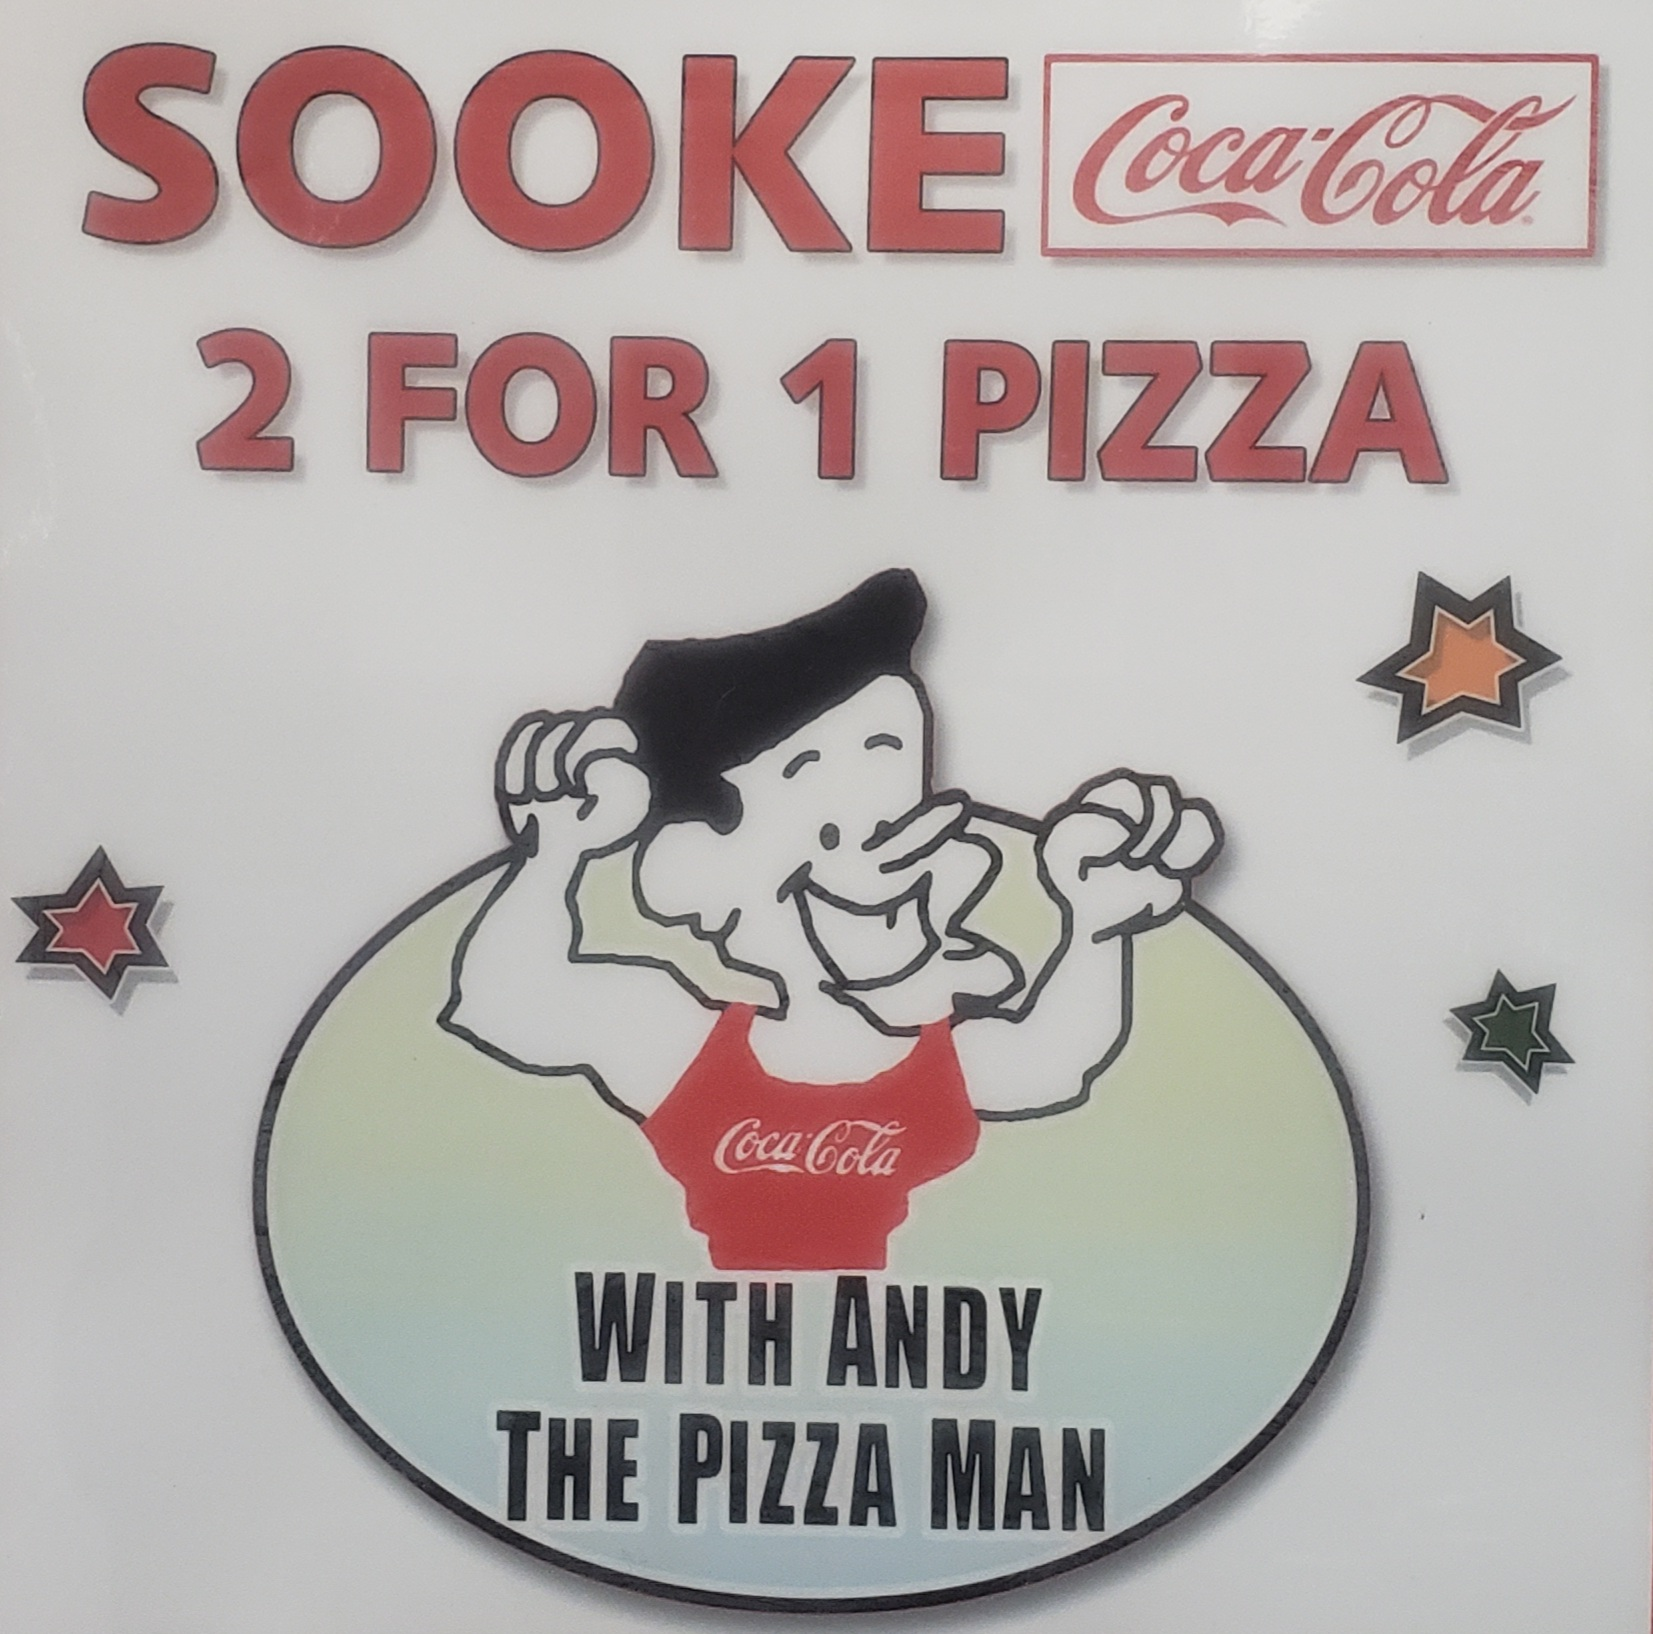 Sooke 2 For 1 Pizza logo